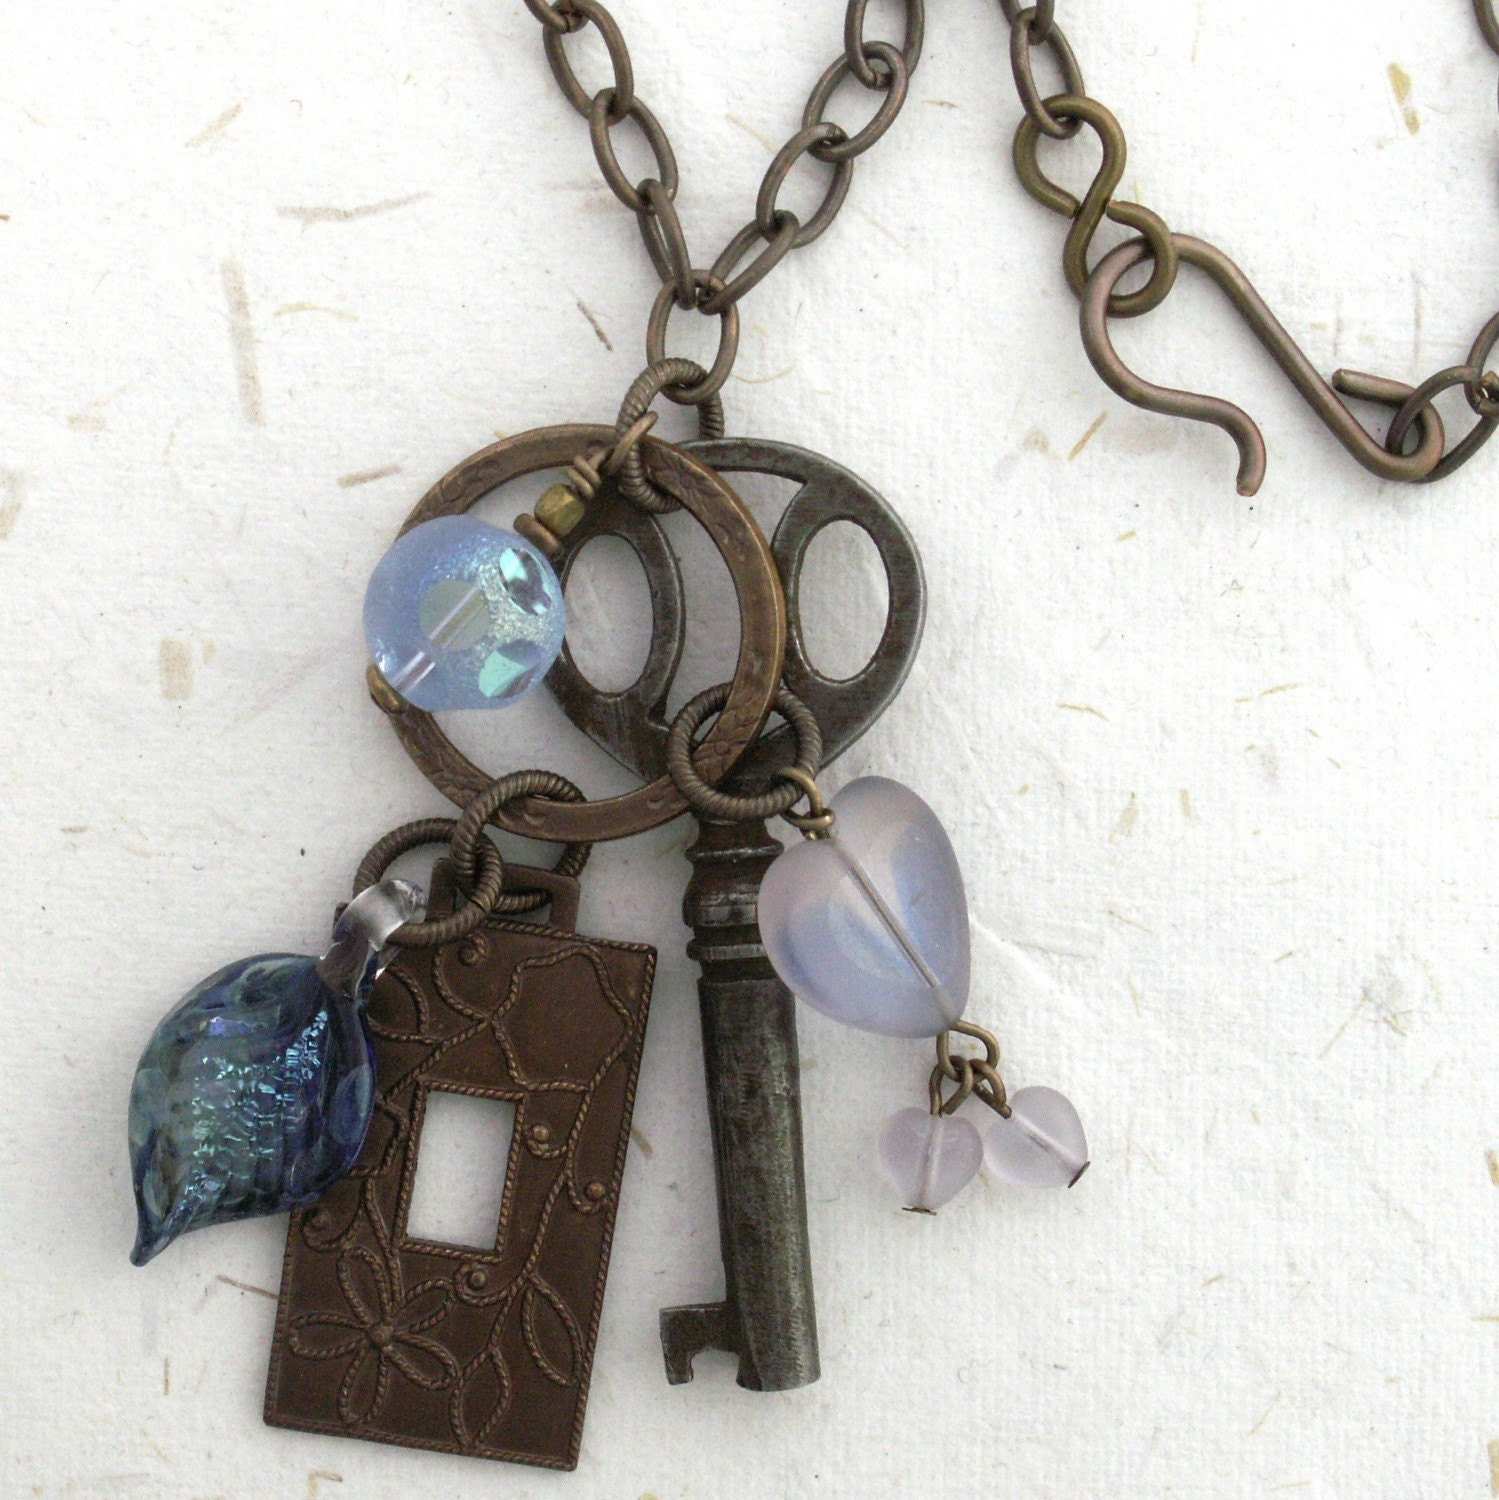 necklace brass antique key escutcheon blue vintage glass bead